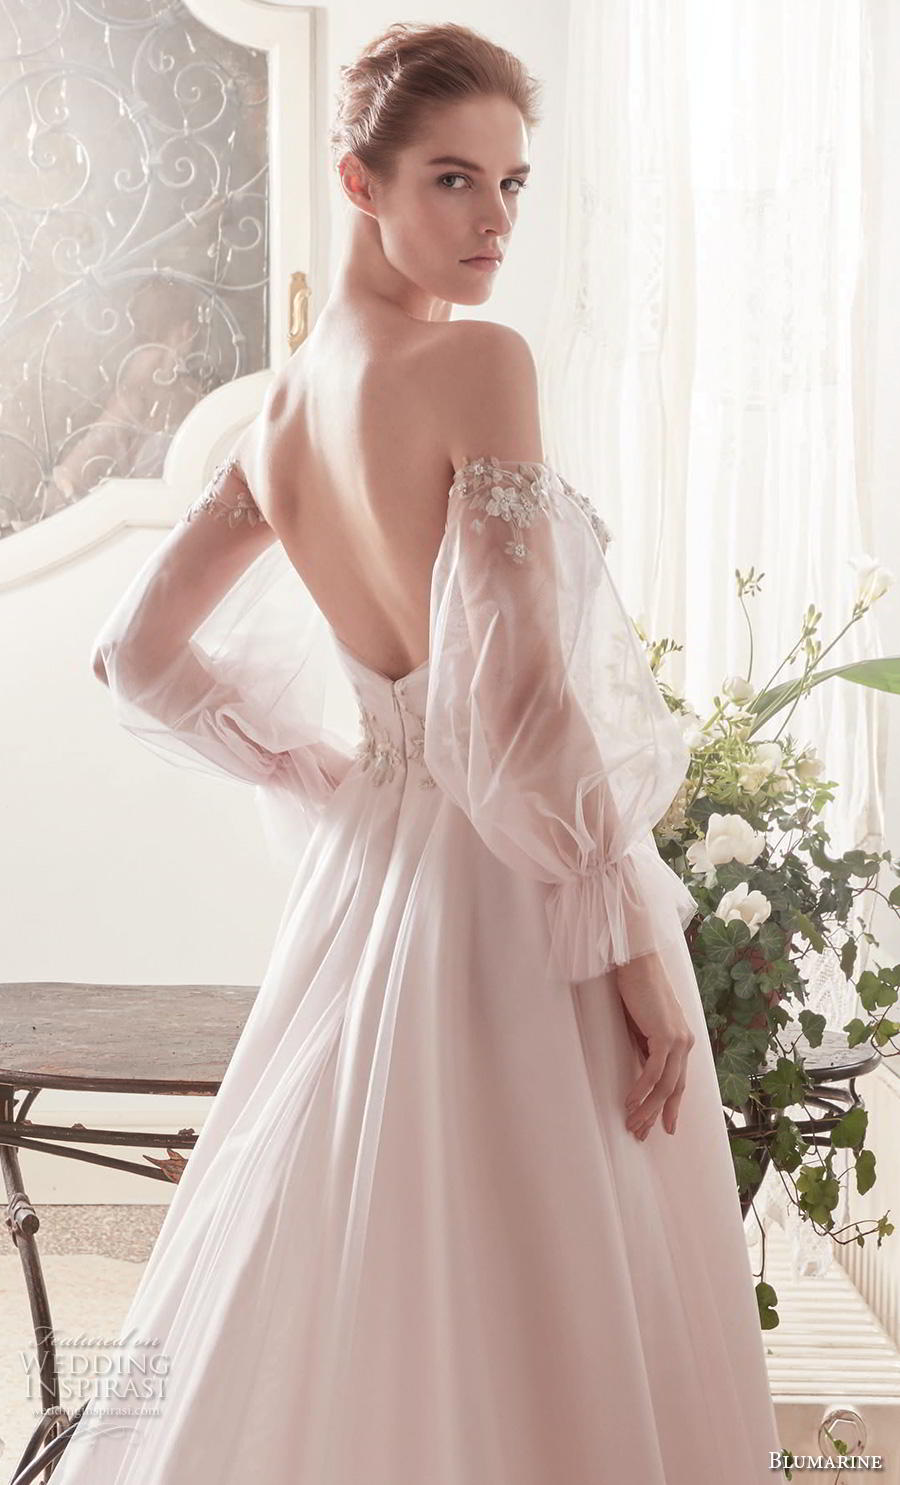 blumarine sposa 2019 bridal off the shoulder long poet sleeves semi sweetheart neckline heavily embellished bodice romantic blush a  line wedding dress backless chapel train (13) zbv